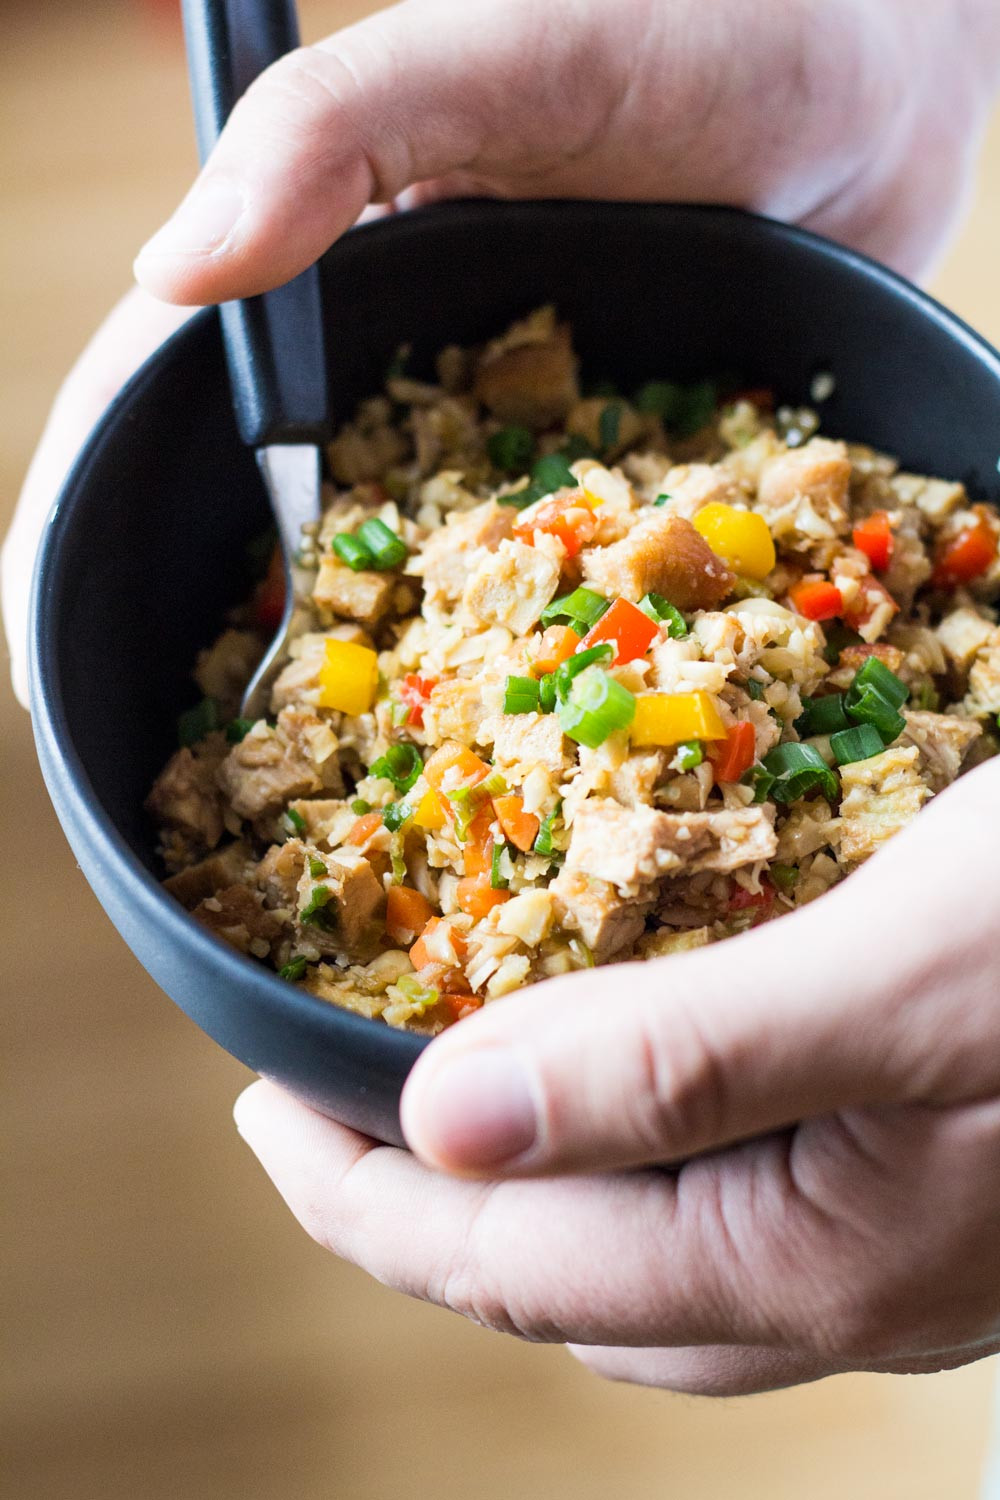 Healthy Cauliflower Fried Rice  Cauliflower Fried Rice Green Healthy Cooking